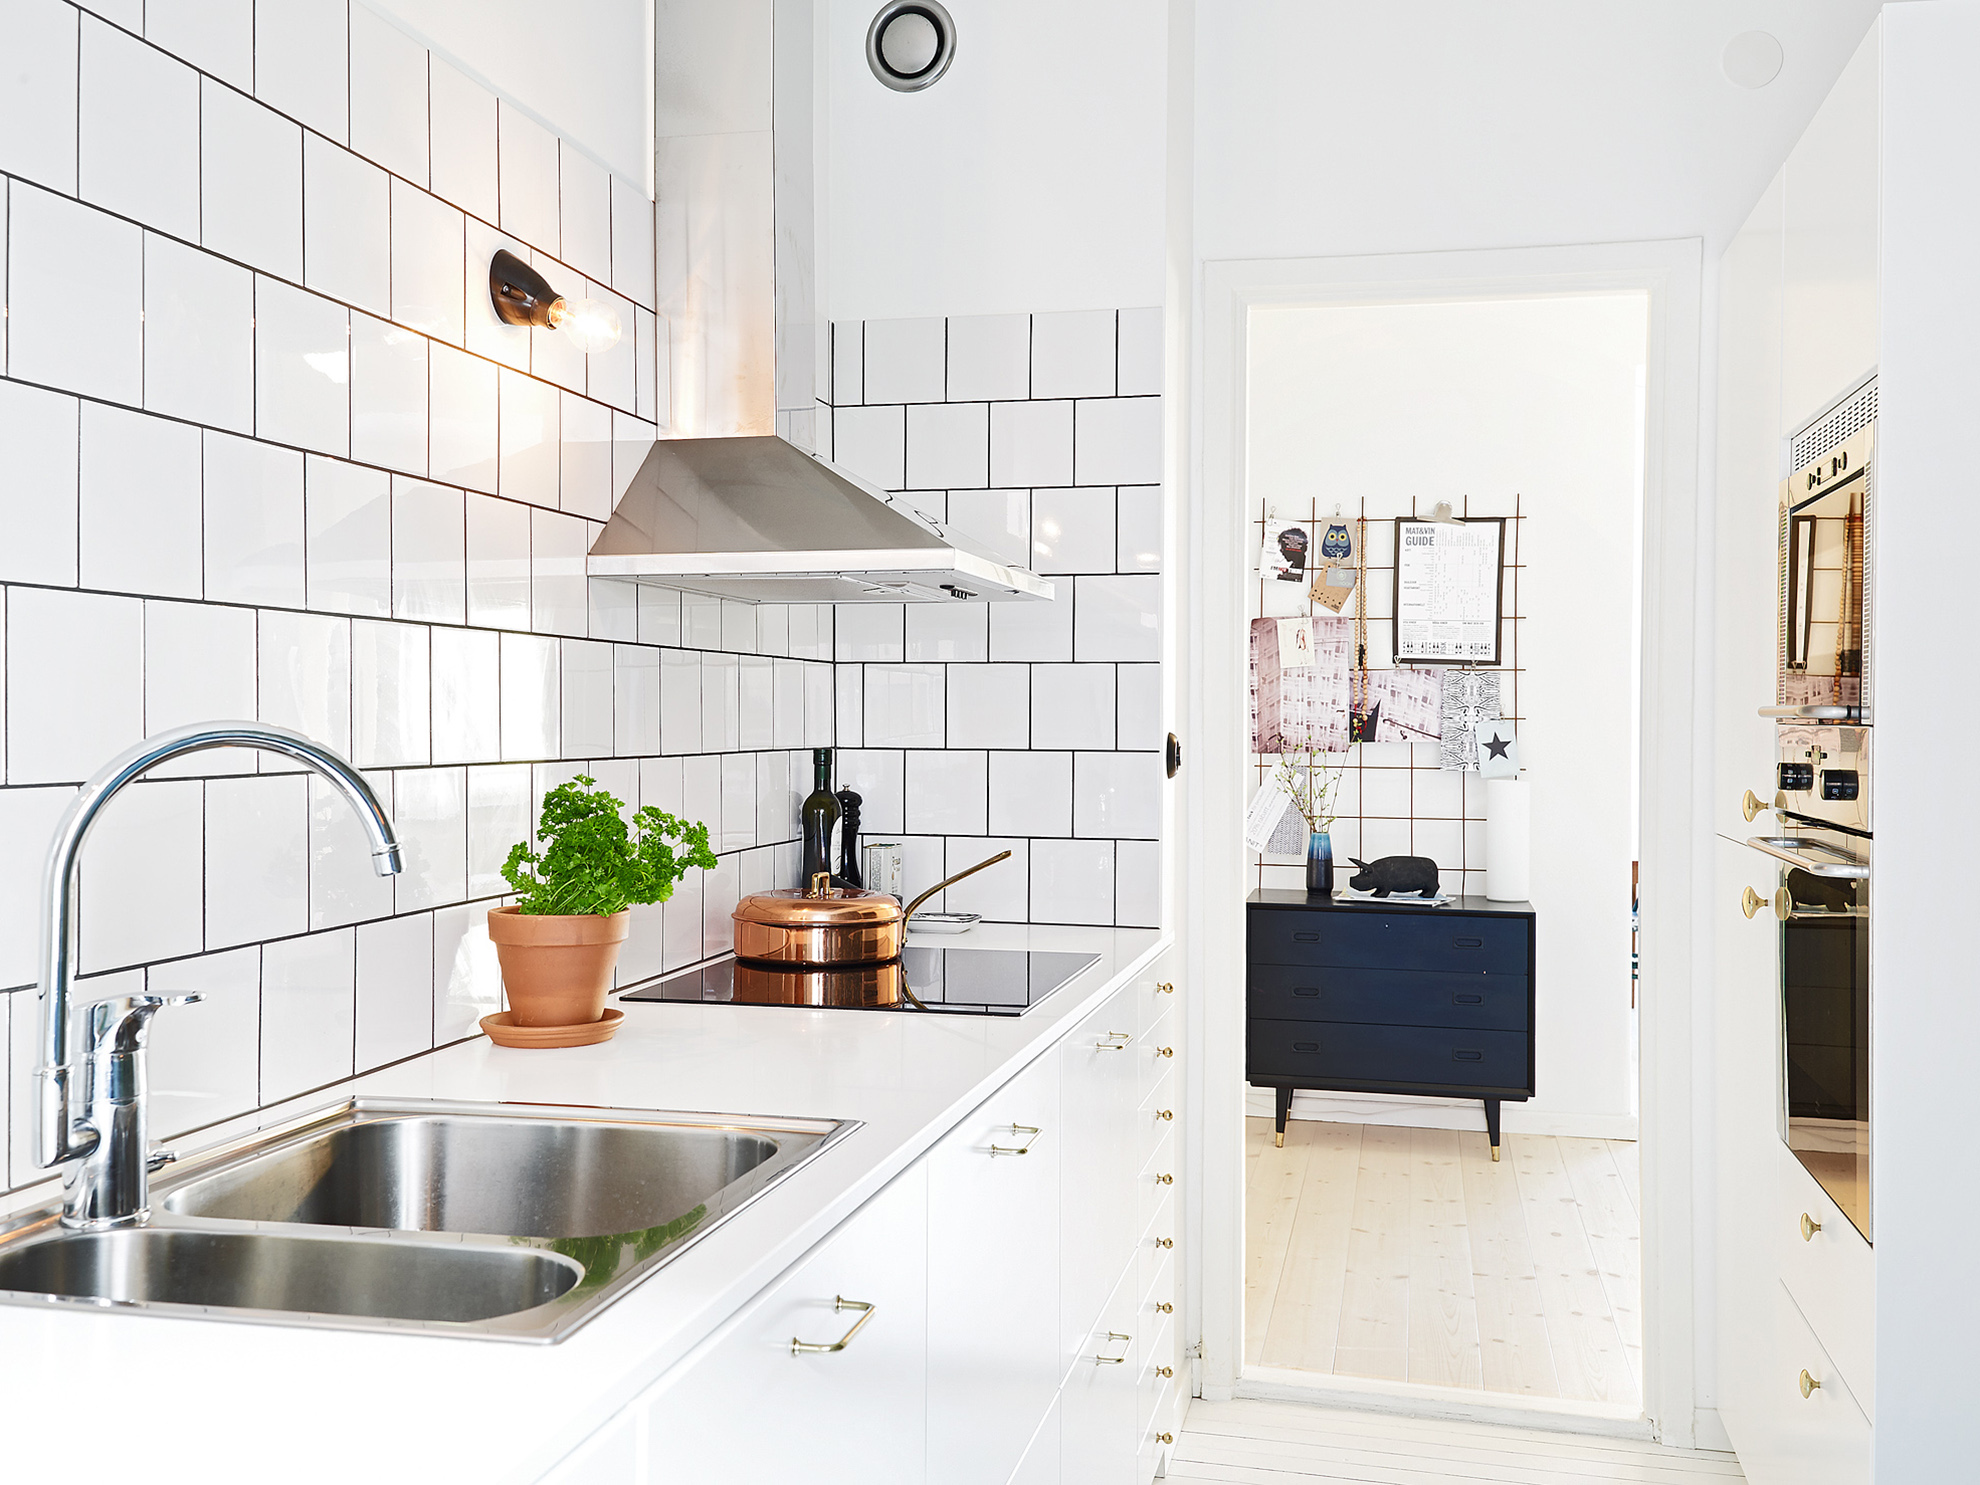 Subway Tile Kitchen Ideas kitchen subway tiles are back in style – 50 inspiring designs